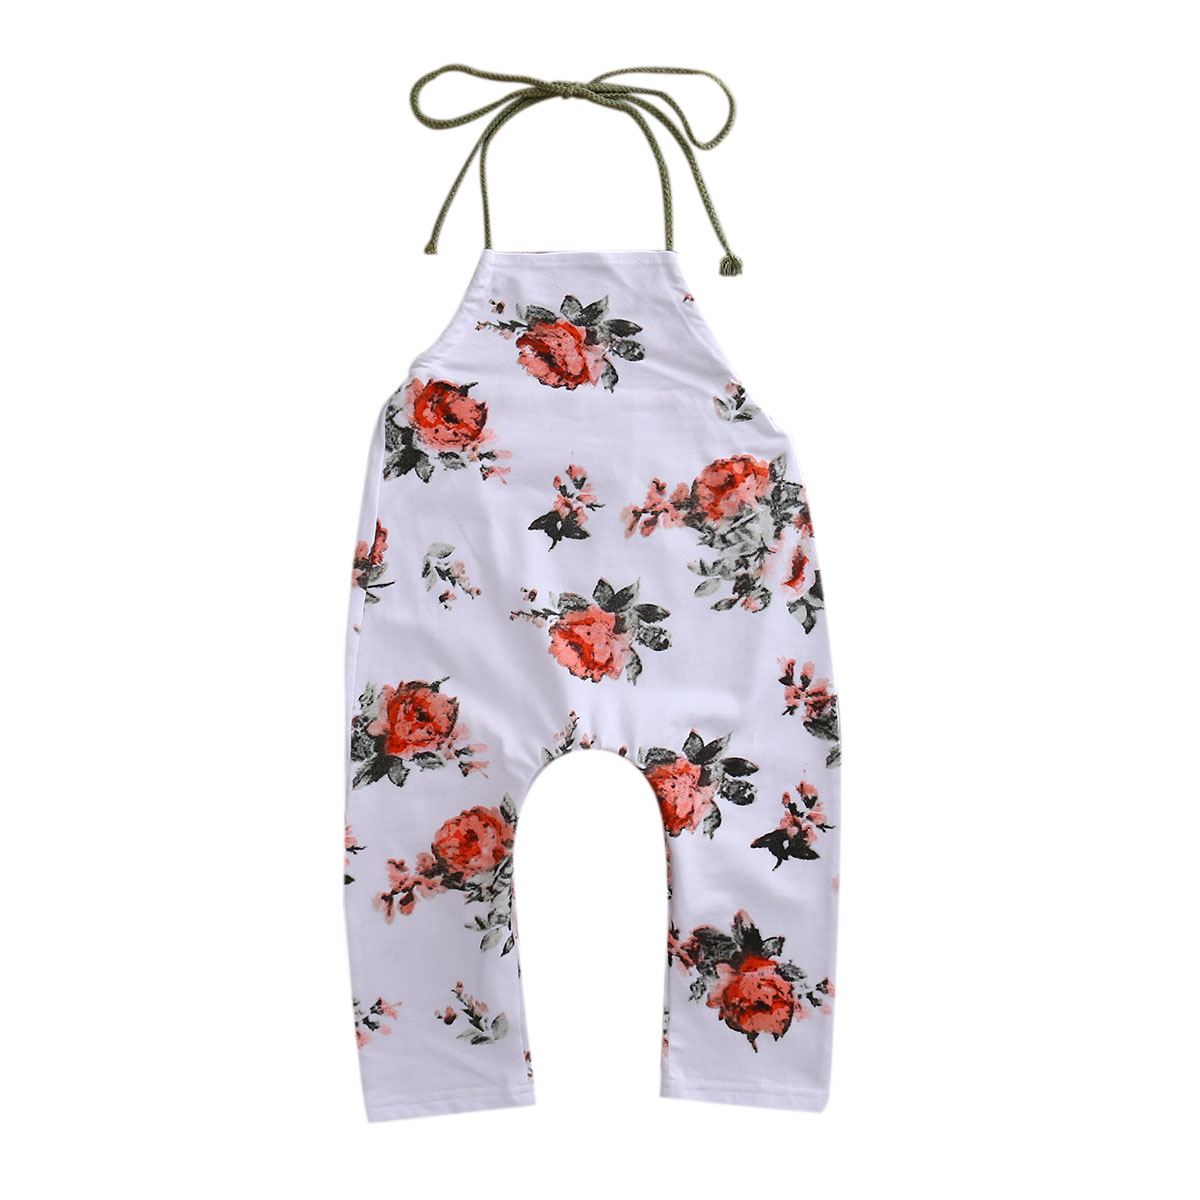 2017 Summer Newborn Toddler Kids Baby Girls Floral Romper Sleeveless Backless Halter Jumpsuit One Pieces Sunsuit Clothes newborn baby backless floral jumpsuit infant girls romper sleeveless outfit